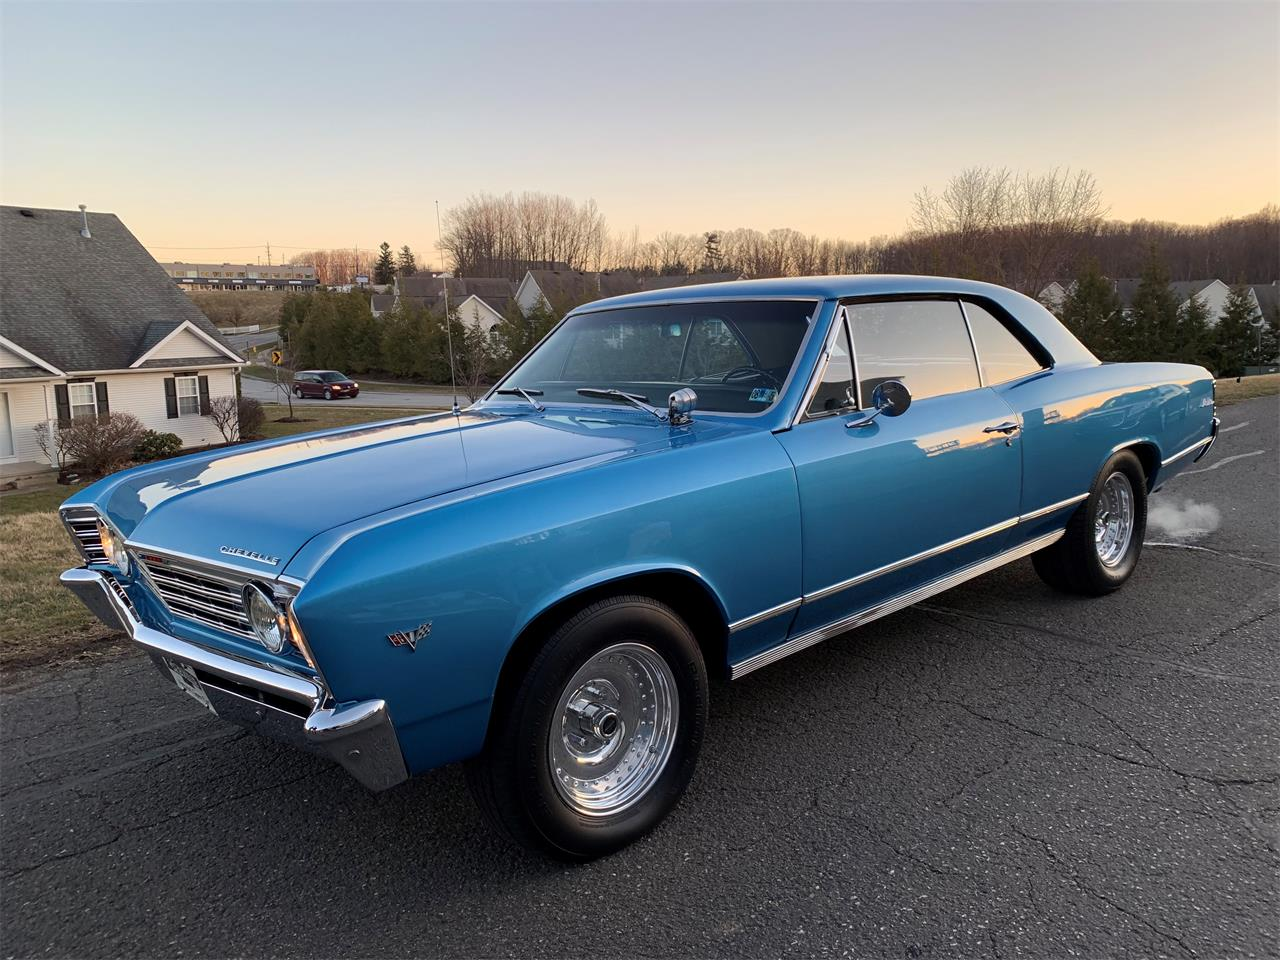 Large Picture of 1967 Chevelle Malibu - $40,000.00 Offered by a Private Seller - JRHT